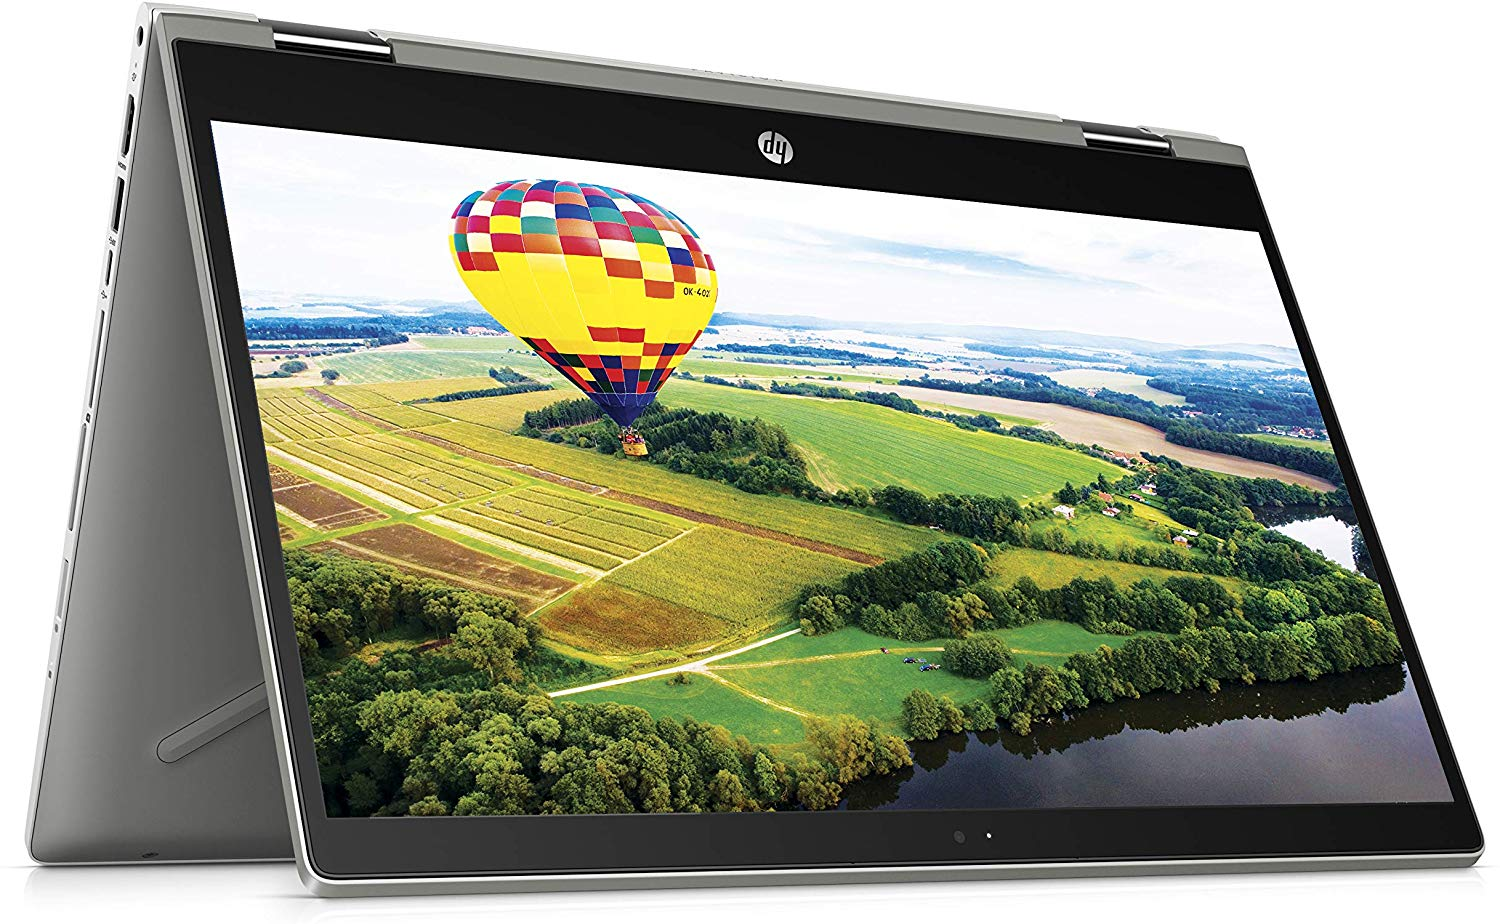 Save £120.99 on HP Pavilion x360 14-cd1009na 14-Inch Full HD Touch Screen Convertible Laptop